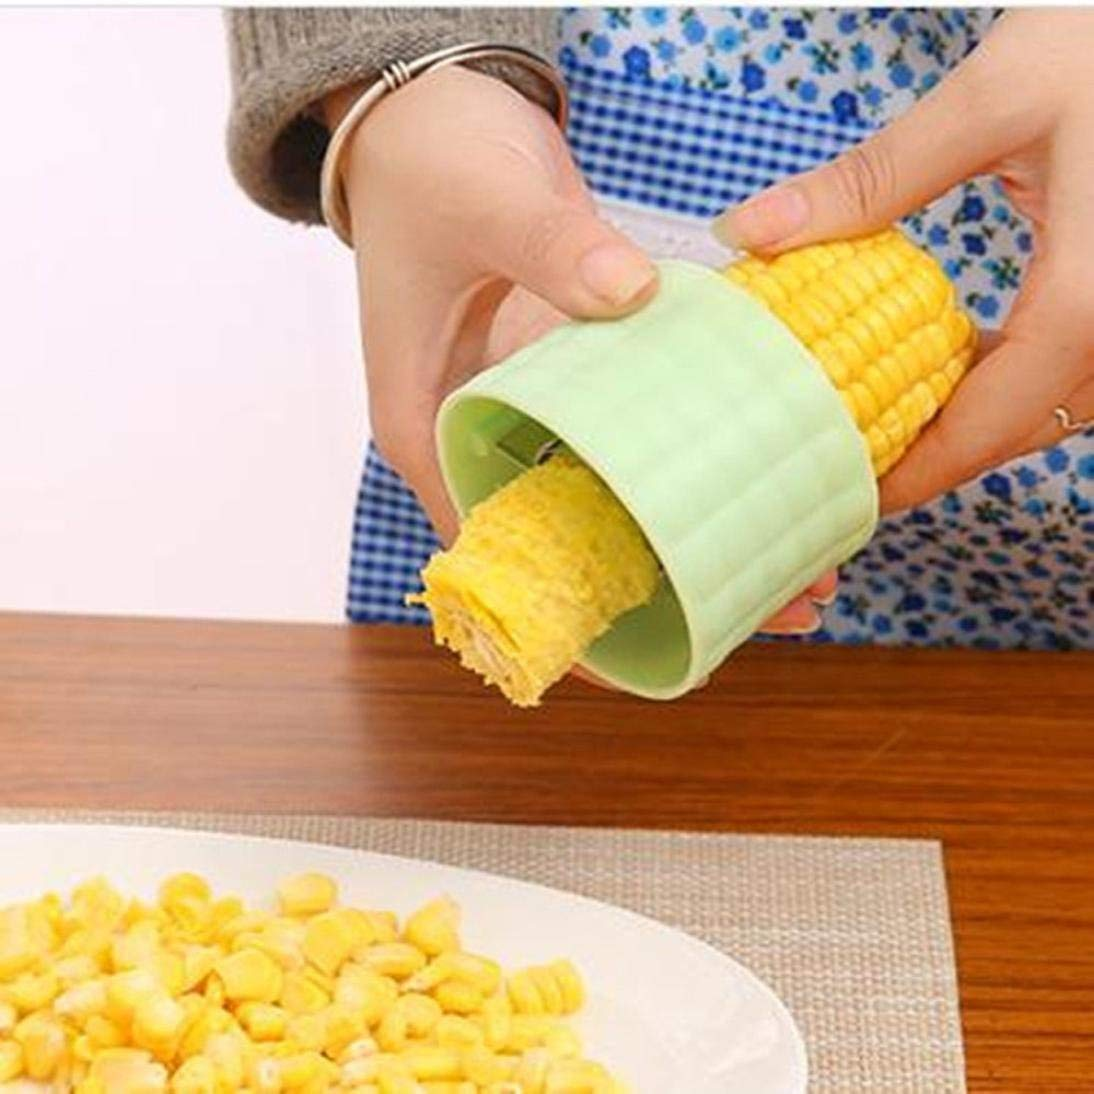 Sikye Corn Cob Cutter - One Step Easy Remove Corn Threshing Splitter Kitchen Tool Helper (Green)